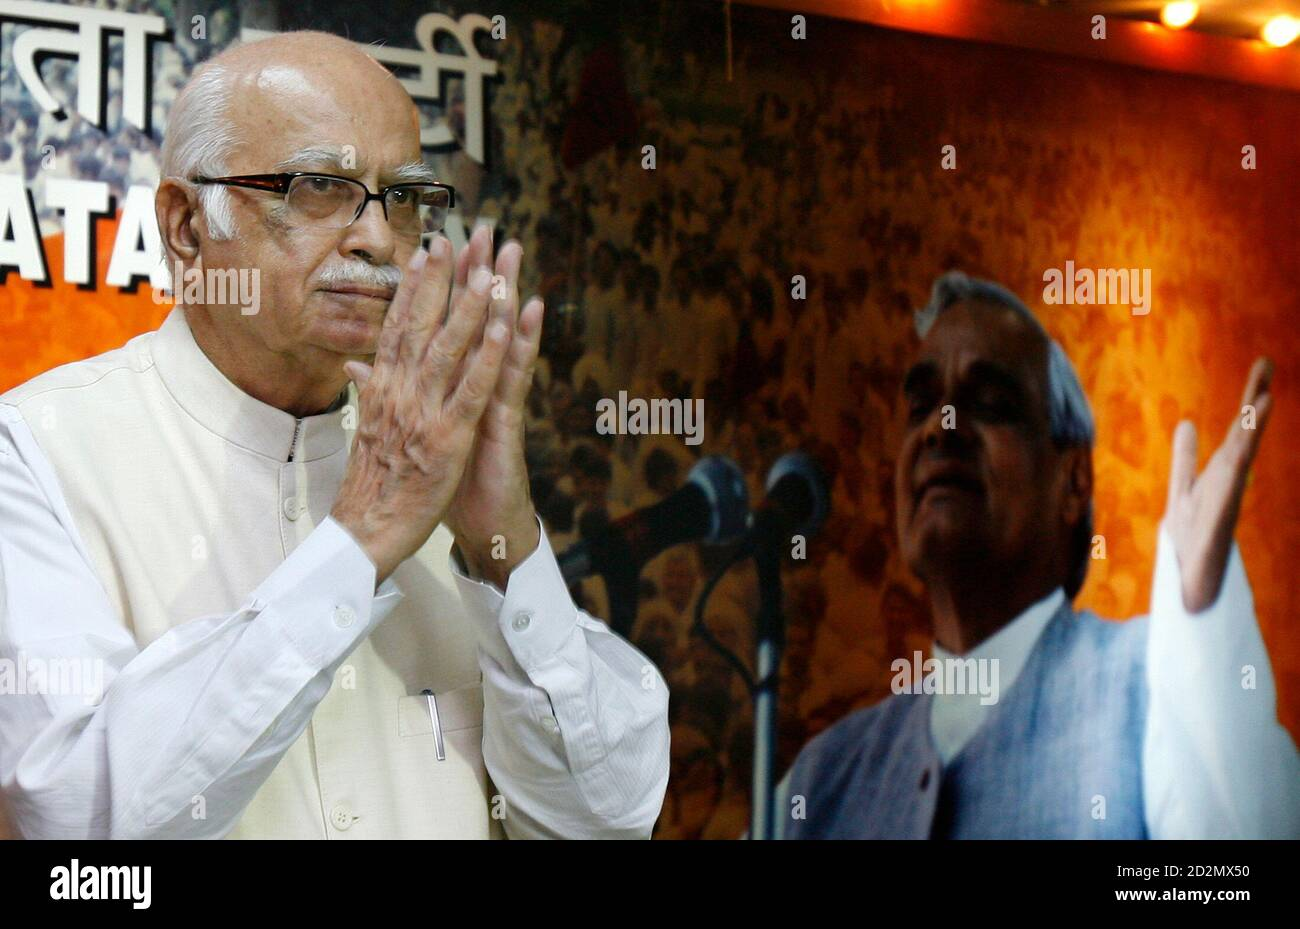 India's main opposition Bharatiya Janata Party (BJP) leader Lal Krishna Advani gestures during a news conference at his party's headquarters in New Delhi July 23, 2008. In the background is a picture of former Indian Prime Minister Atal Behari Vajpayee.   REUTERS/Vijay Mathur (INDIA) Stock Photo